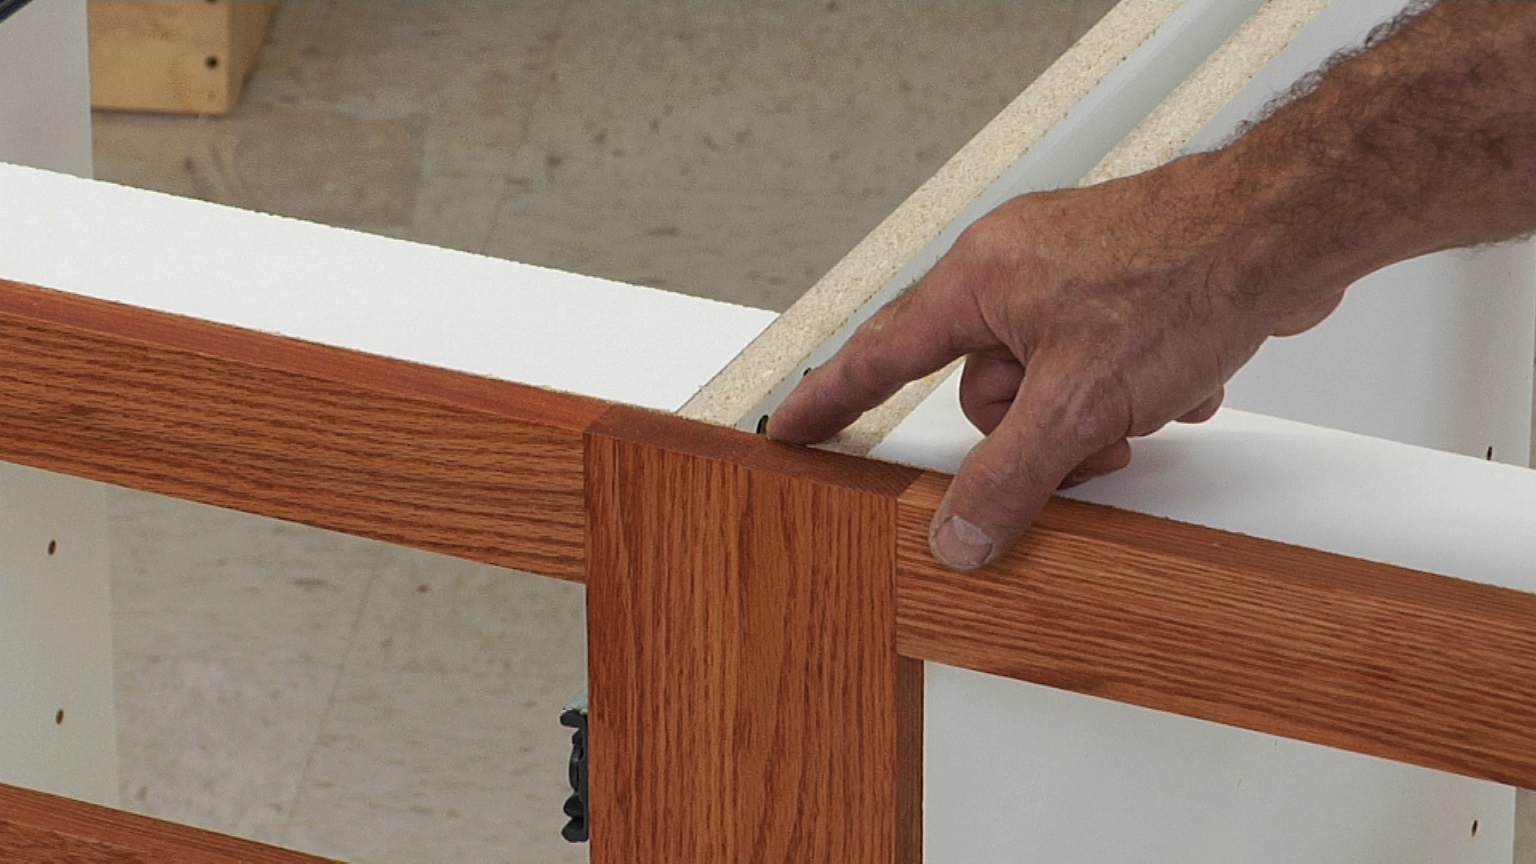 Scribe on a Cabinet Face Frame | Woodworkers Guild of America